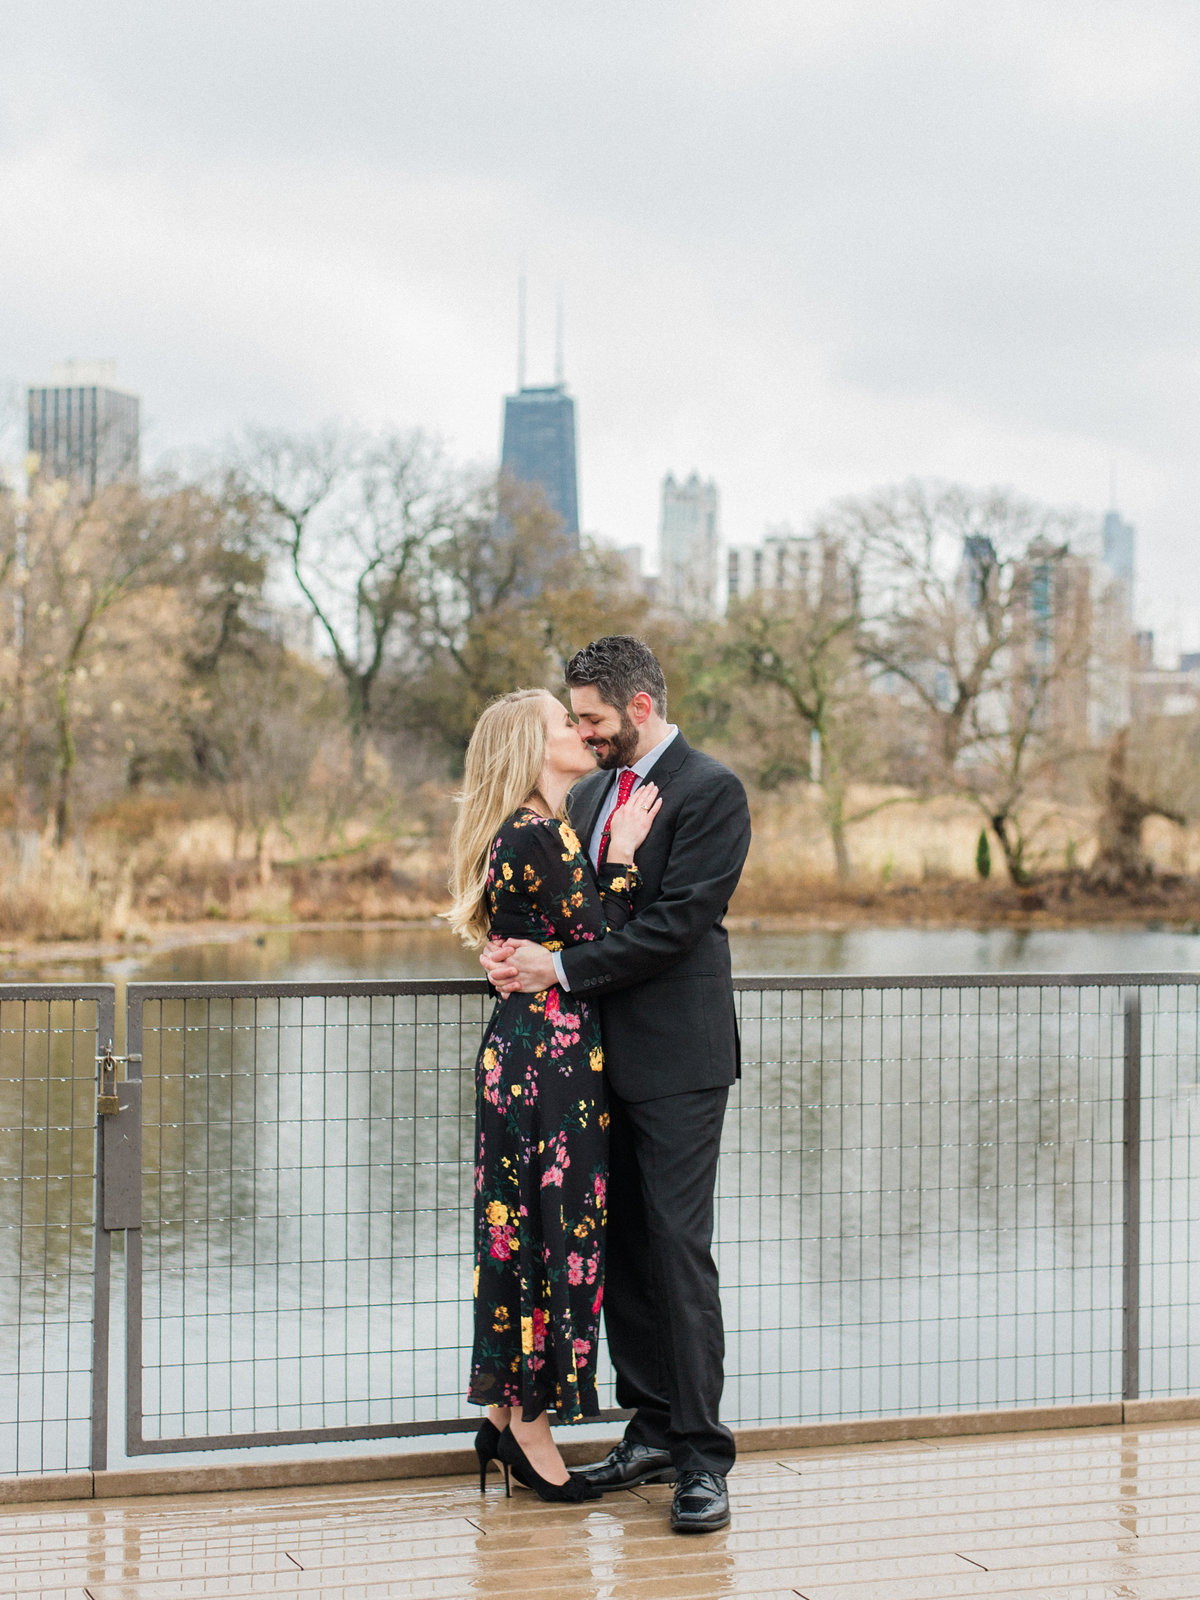 couple hugging on bridge wearing black gown and suit